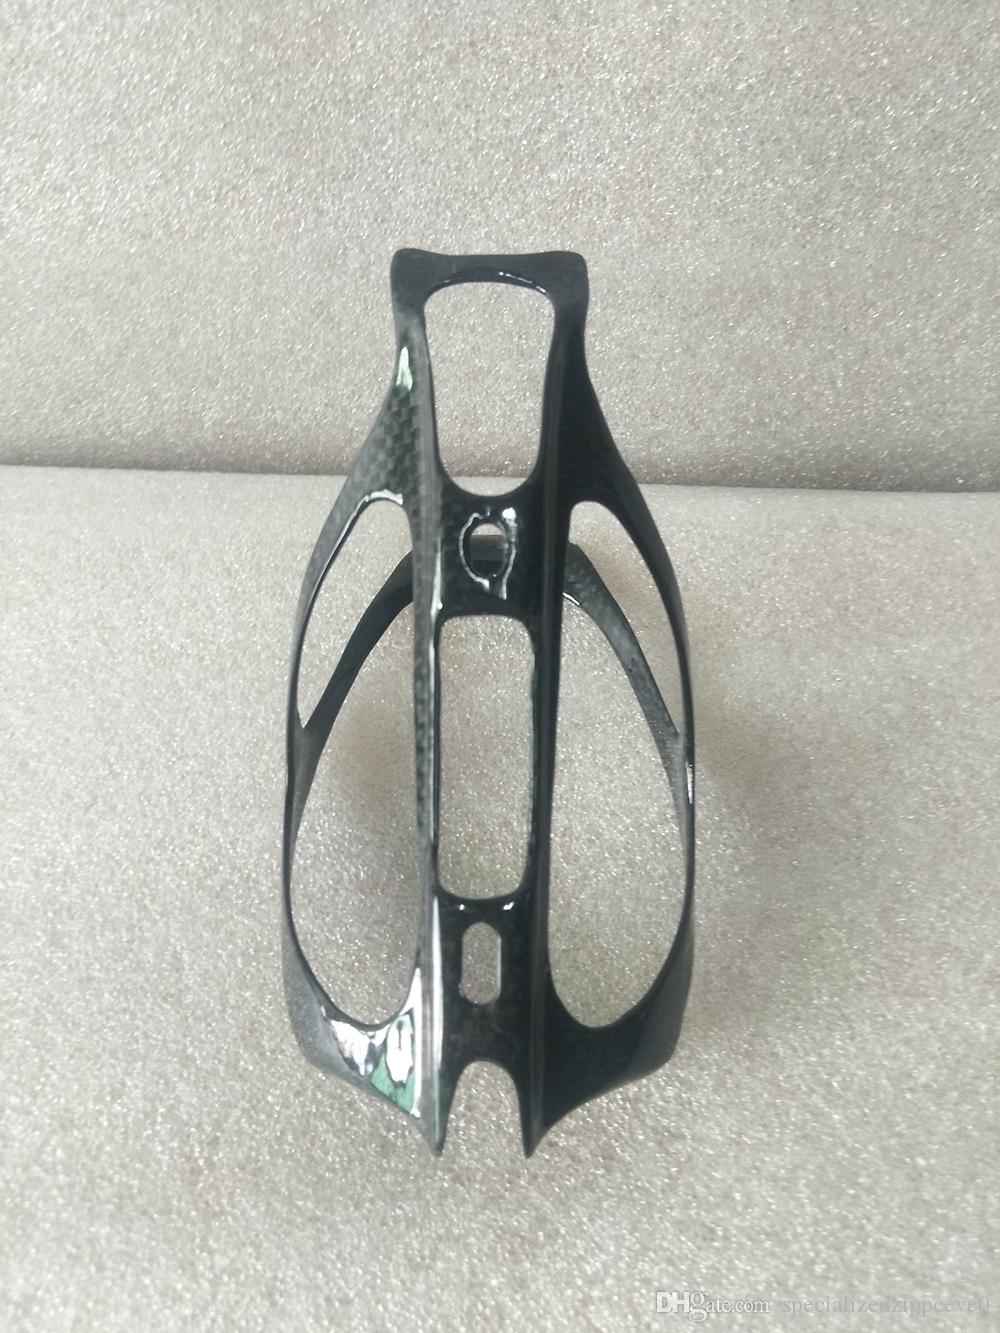 Bicycle Bottle Holder Mountain Bike Cycling Bike Glass Fiber Water Bottle Holder Carriages With 2 Screws Carbon Bottle Cage 25g